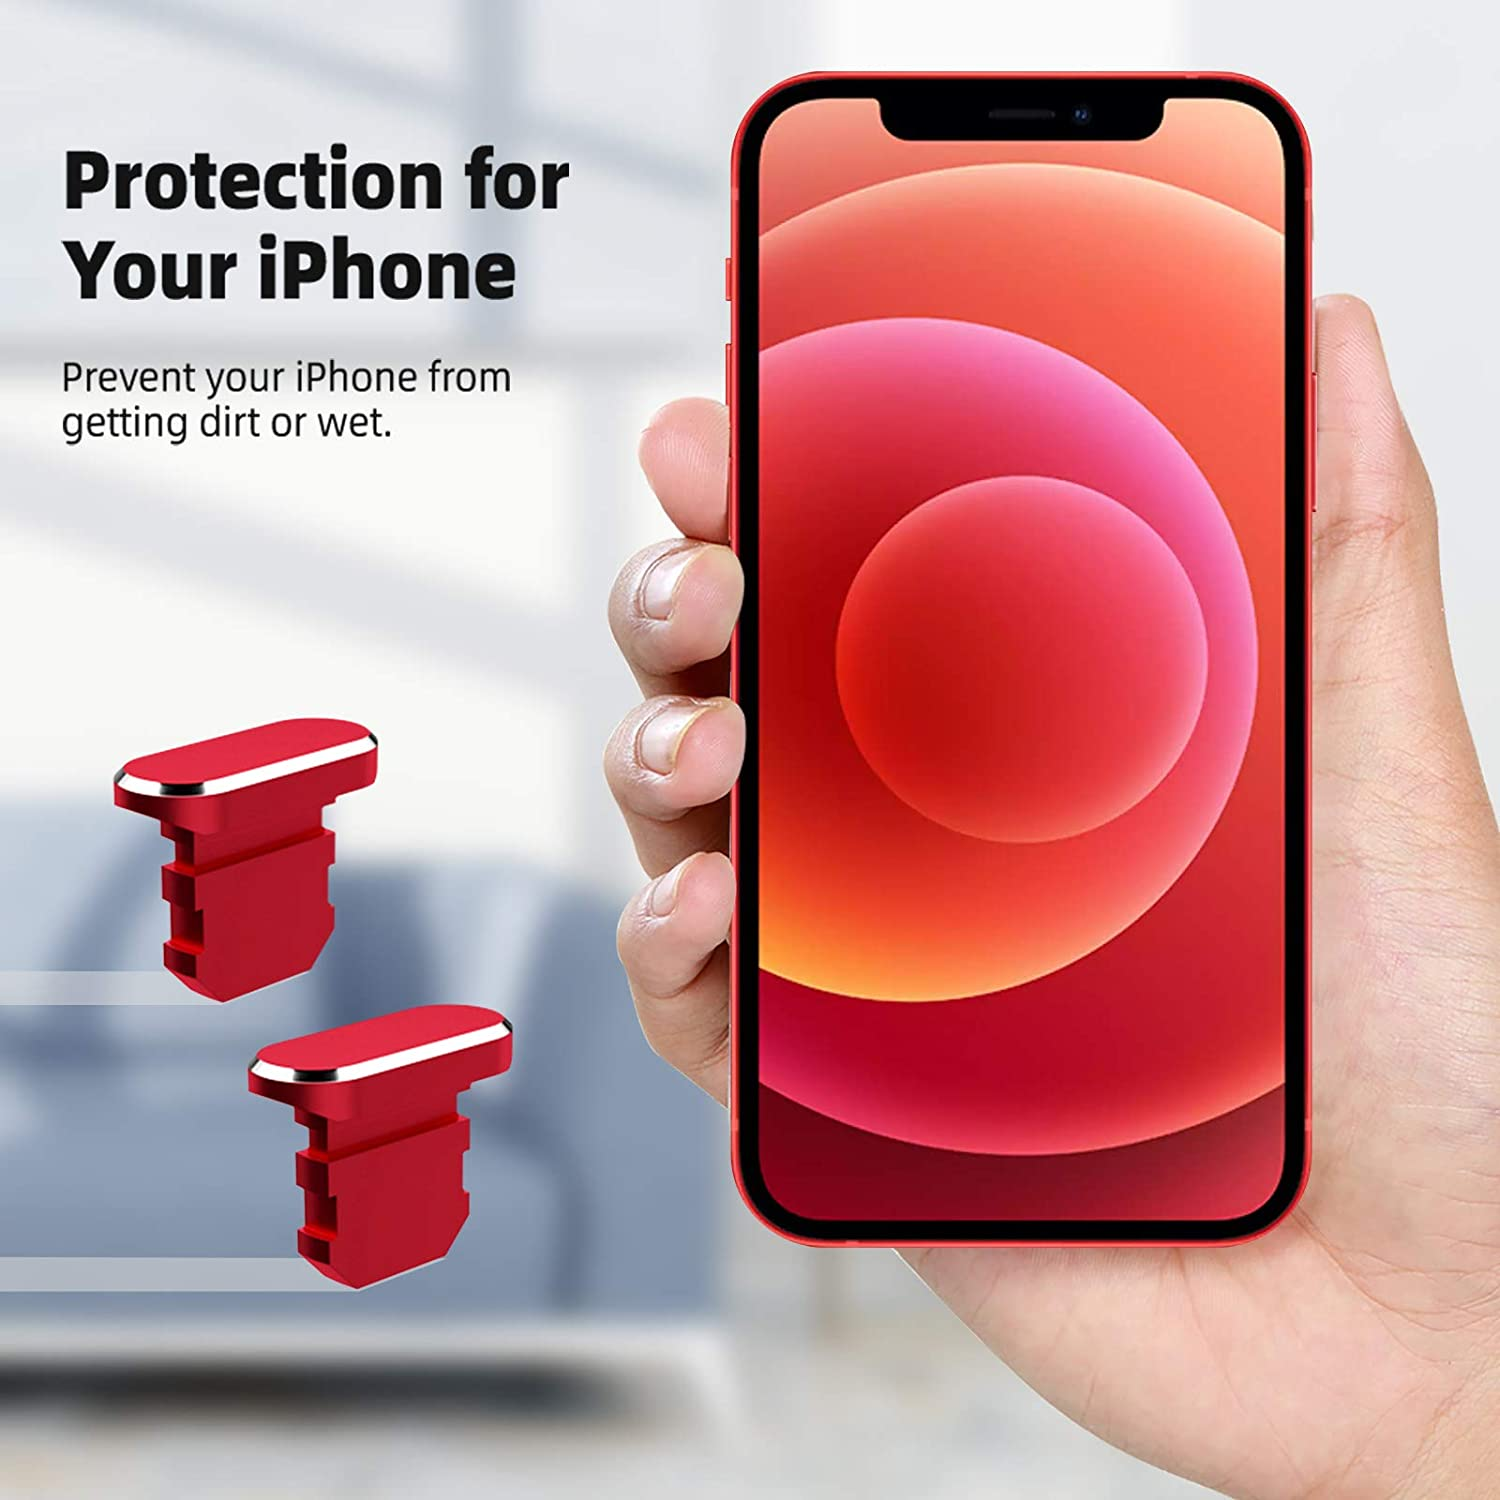 Anti Dust Cover Caps with Cable Clip Charging Port Plug Dust Protector with Carrying Box Compatible with iPhone 12//11 Pro Max//XS//XR Black TITACUTE Compatible with iPhone 12 Pro Dust Plug 2 Pack